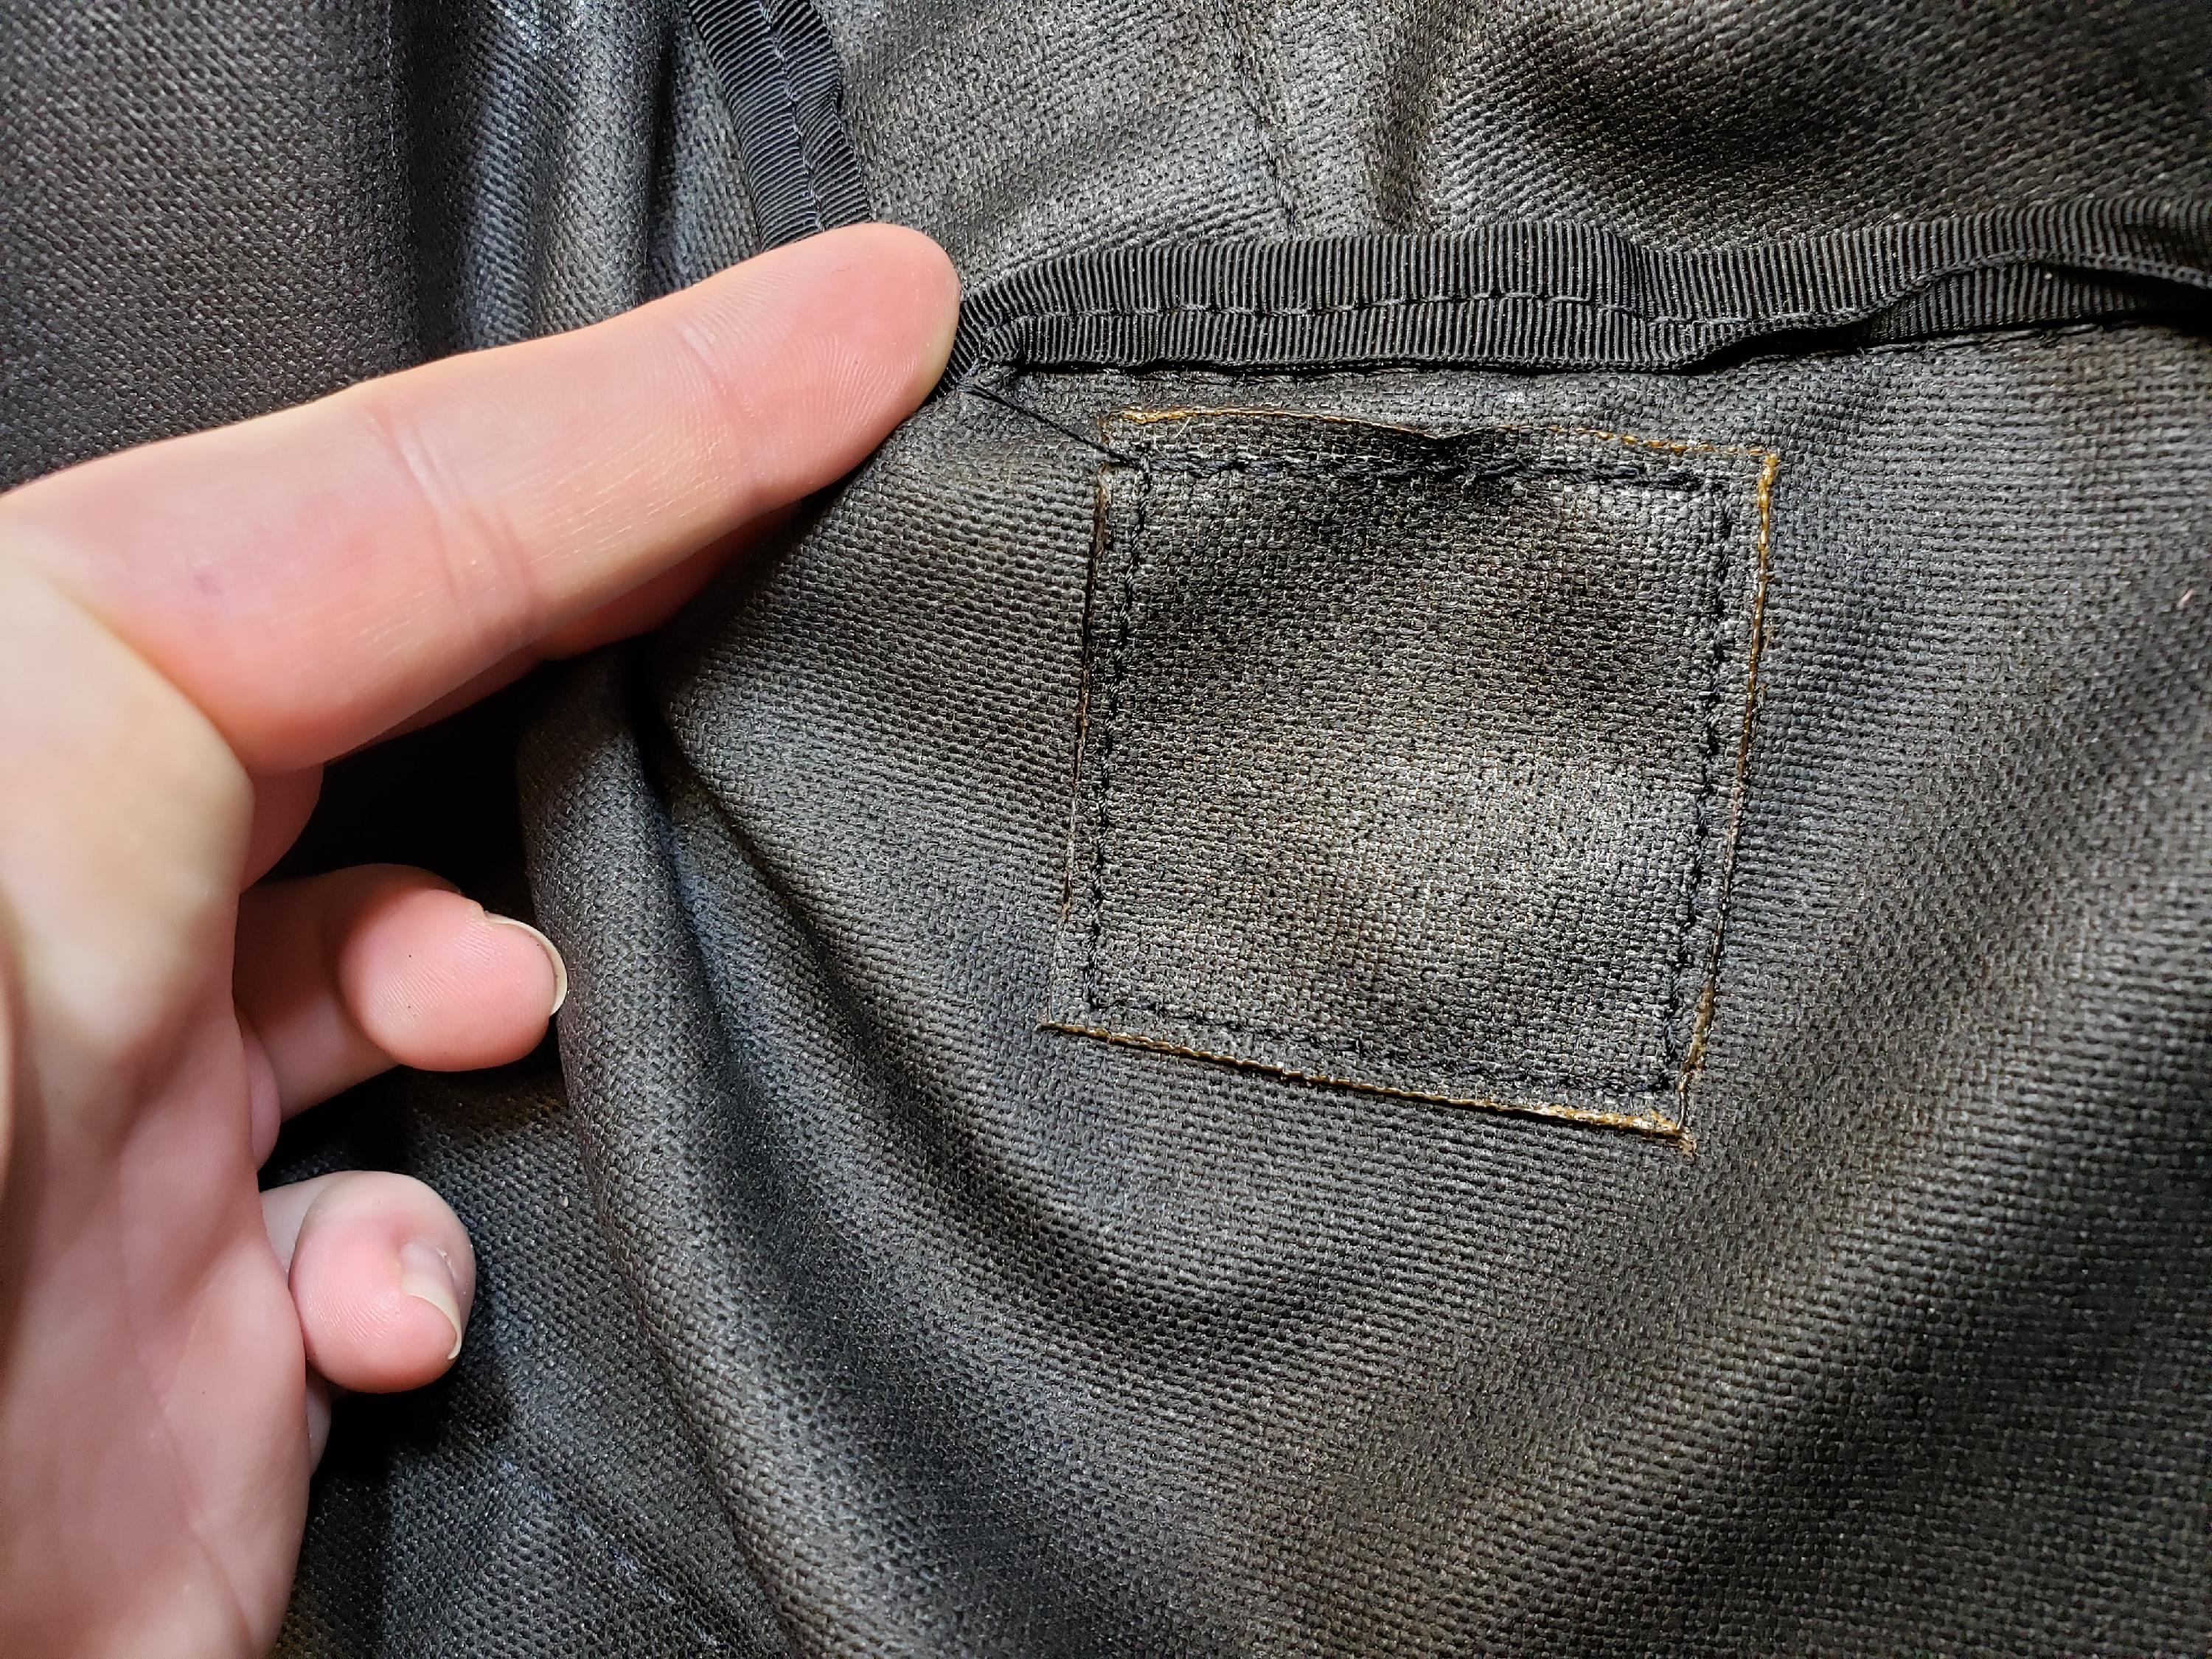 A sample repair patch on a Red Oxx bag.